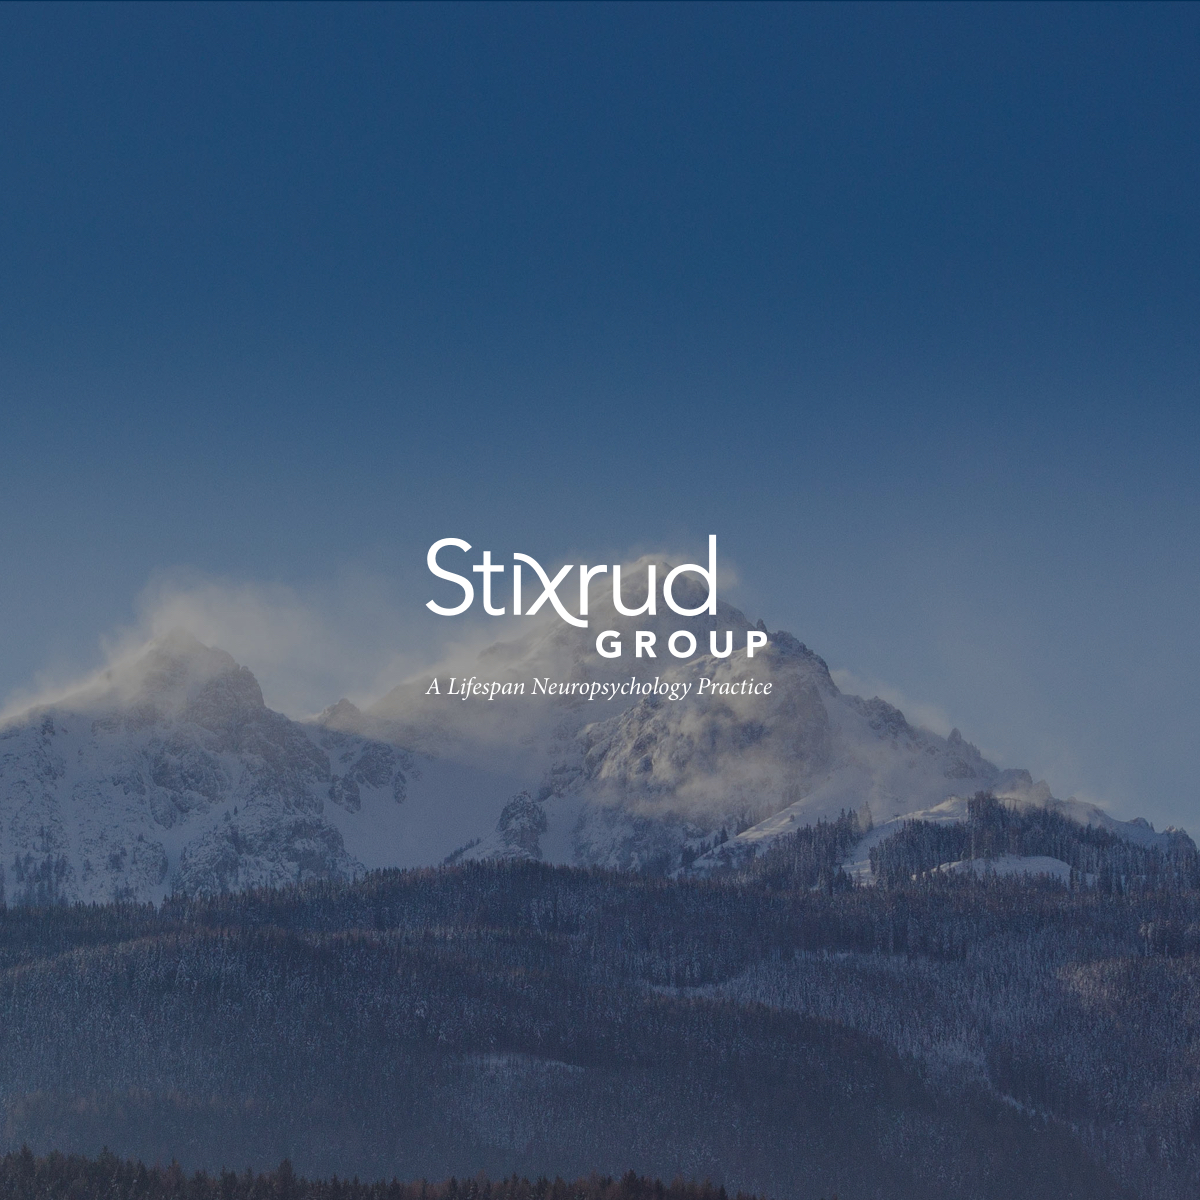 The Stixrud Group